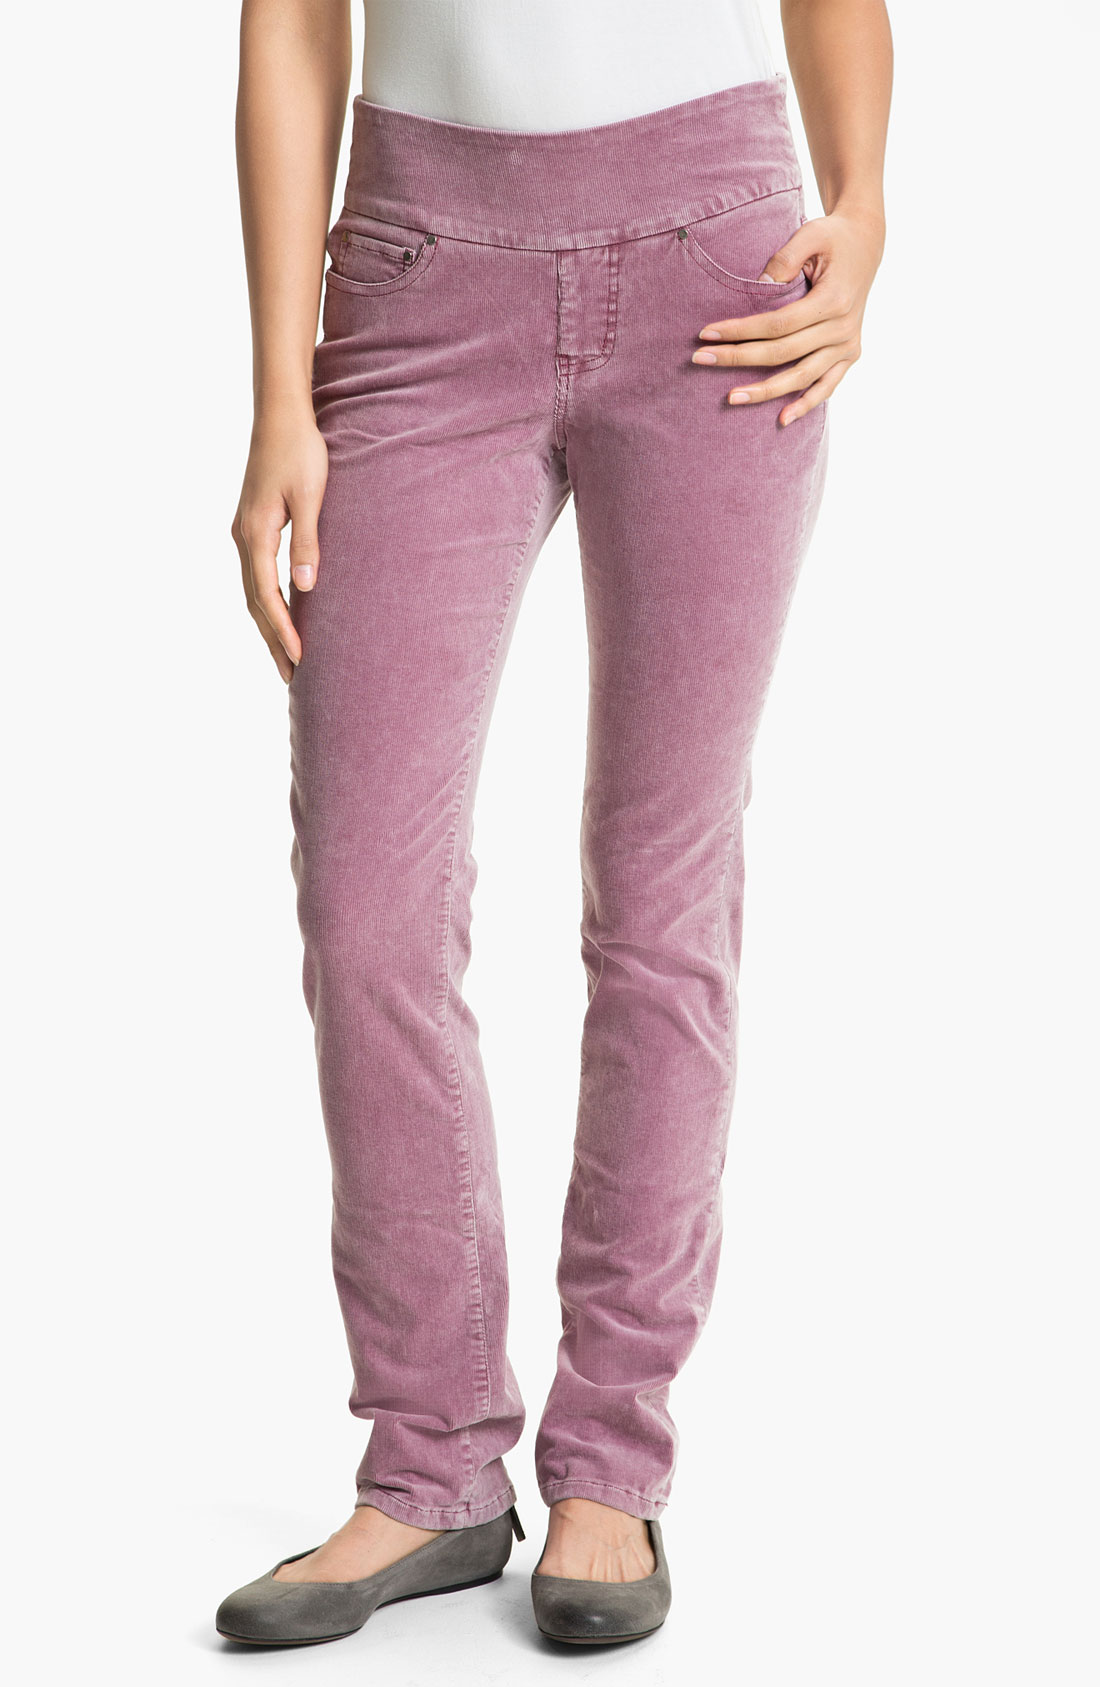 Jag Jeans Peri Straight Leg Corduroy Pants In Pink Dark